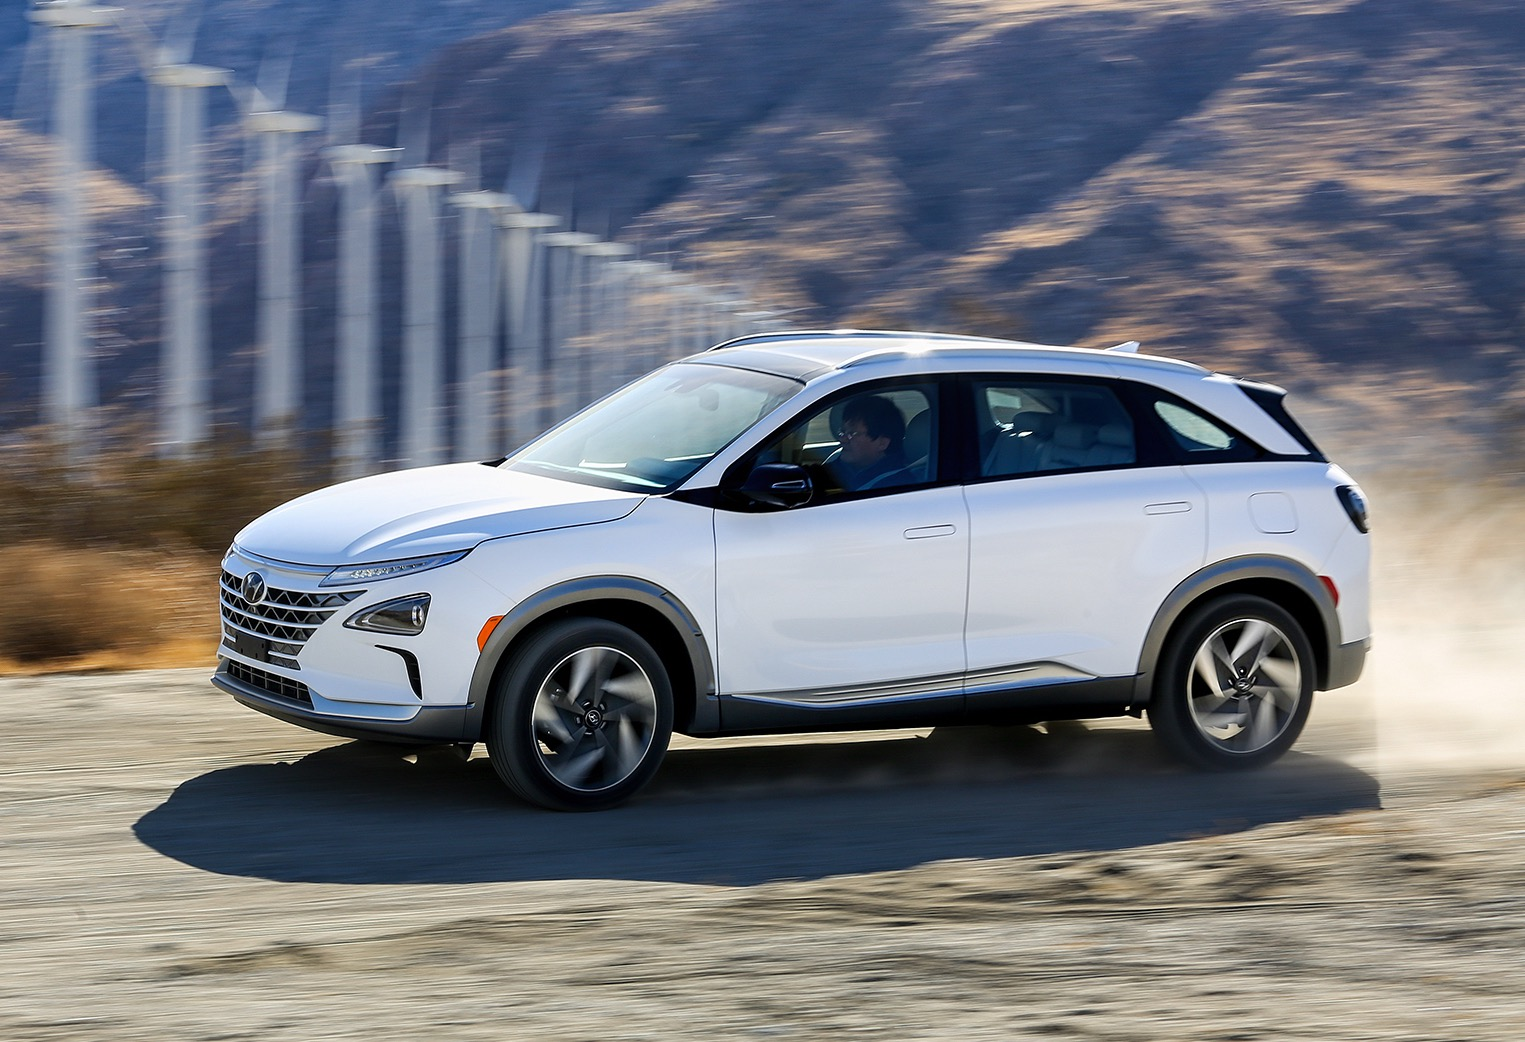 hyundai nexo revealed as new fuel cell crossover performancedrive. Black Bedroom Furniture Sets. Home Design Ideas